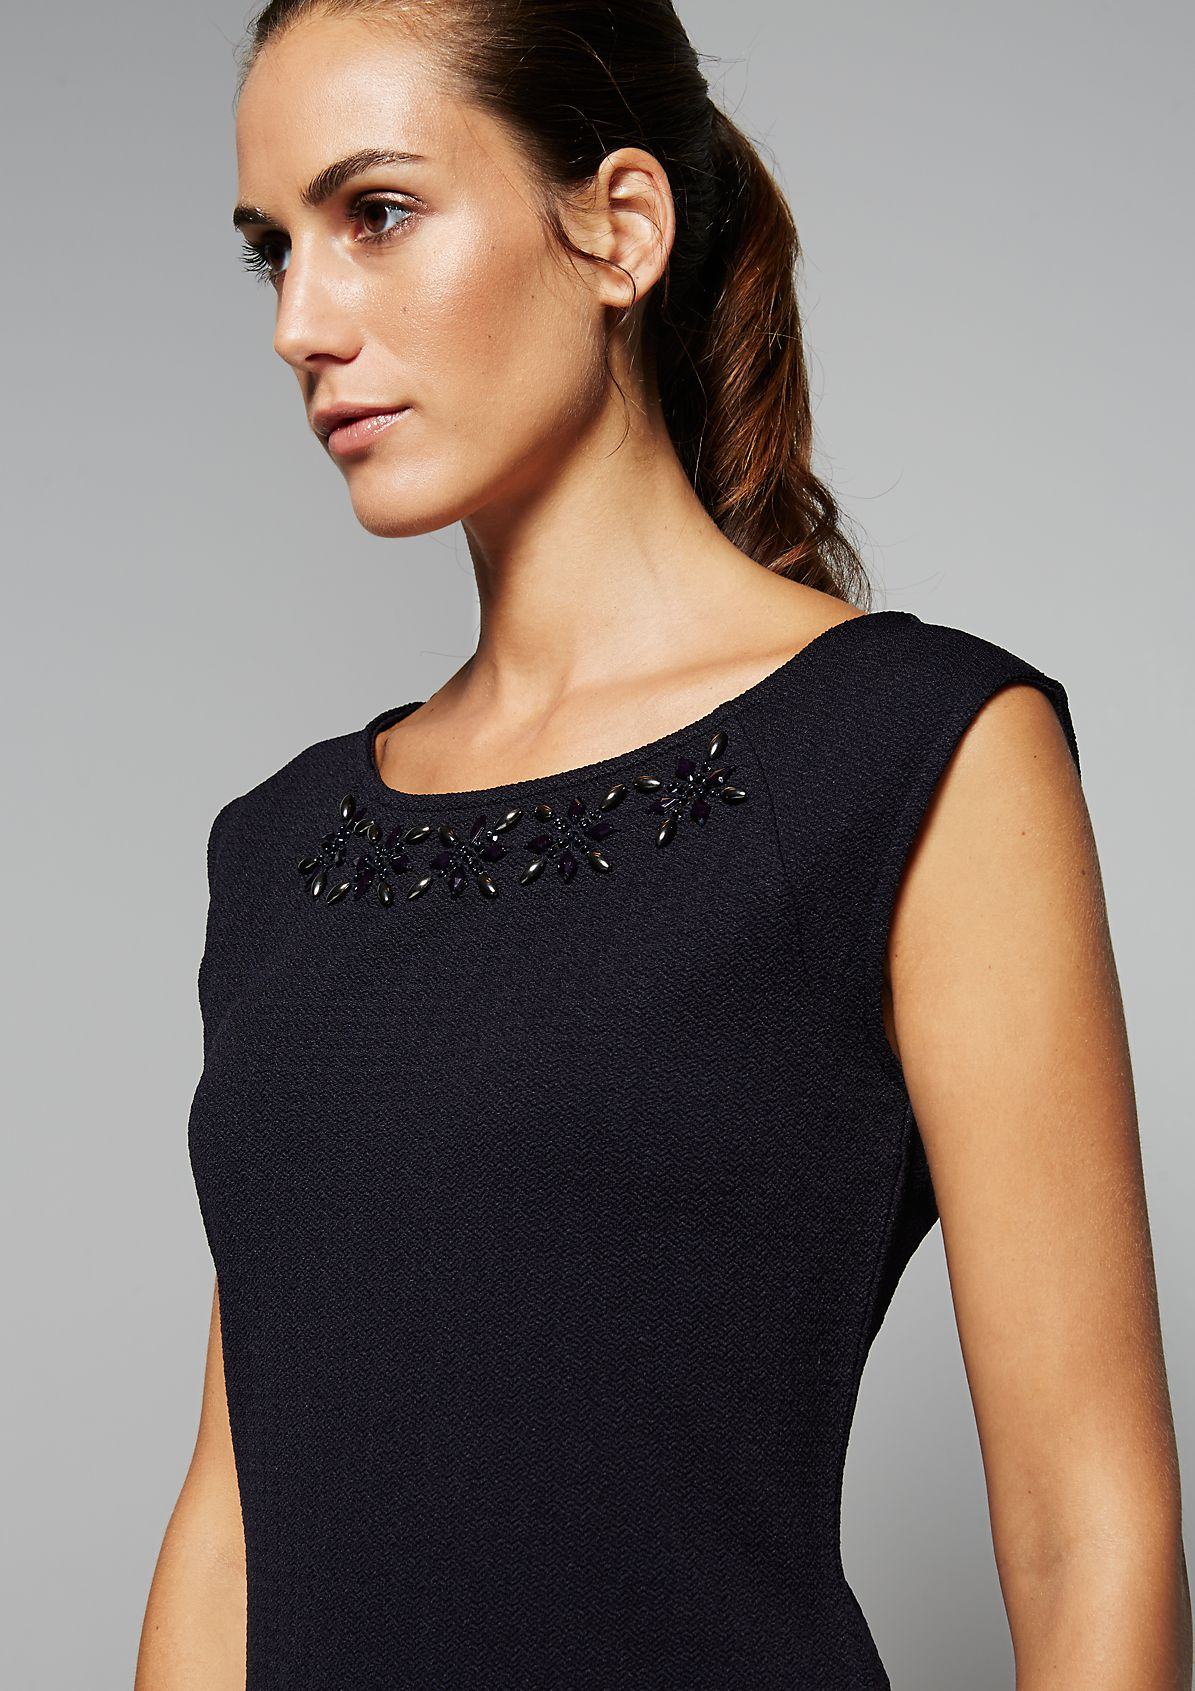 Sleeveless top with a glamorous rhinestone trim from s.Oliver